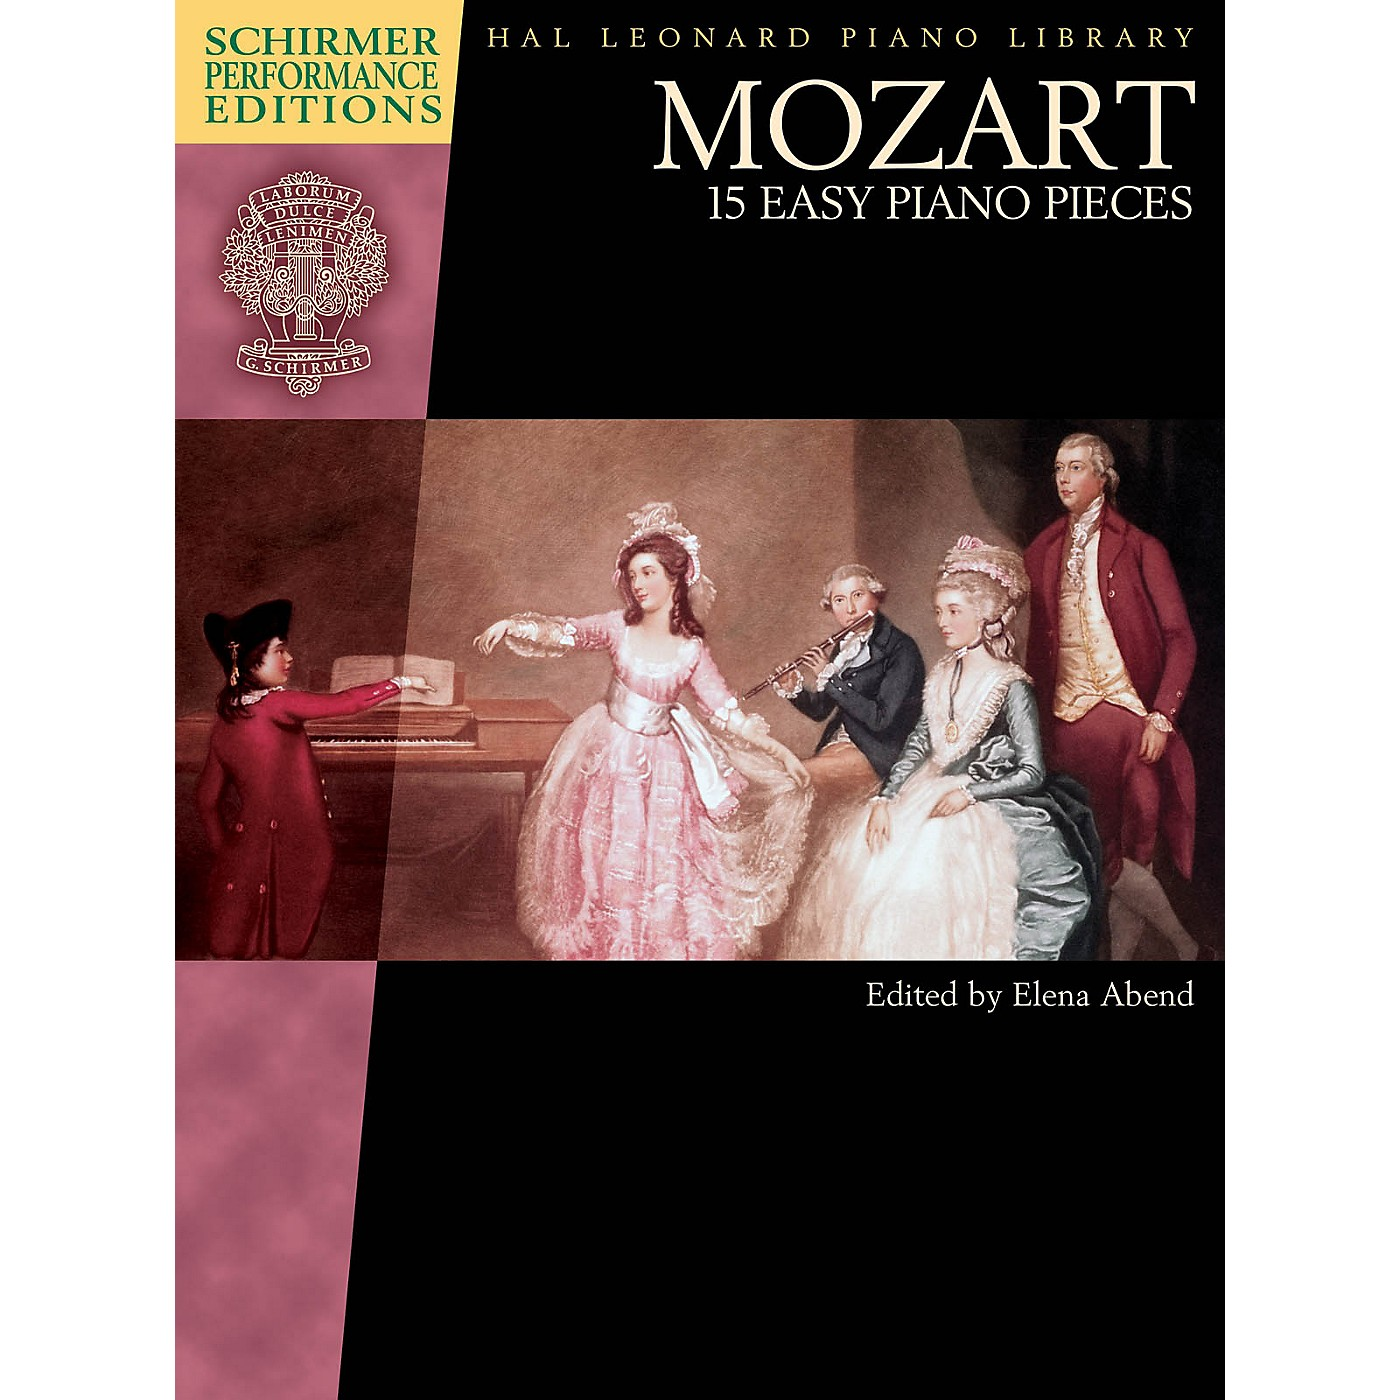 G. Schirmer Mozart - 15 Easy Piano Pieces Schirmer Performance Editions Softcover by Mozart Edited by Elena Abend thumbnail